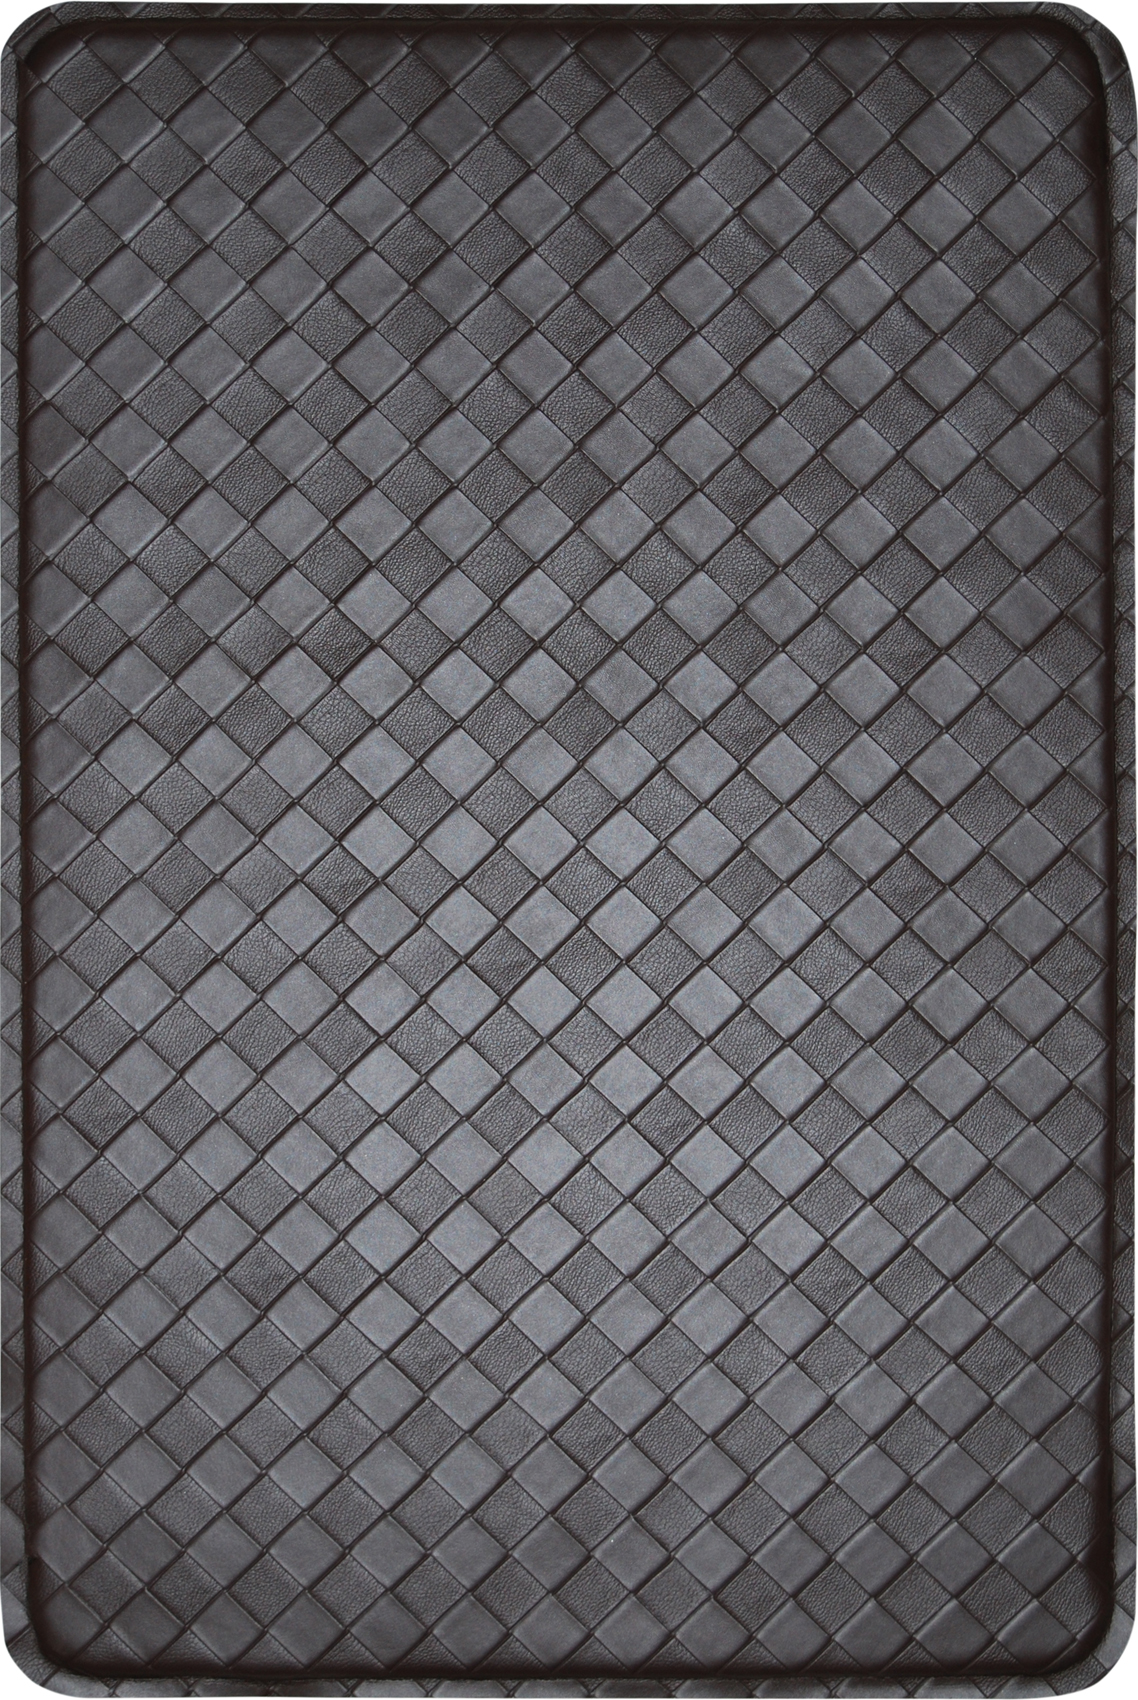 Floor Mat For Kitchen Modern Indoor Cushion Kitchen Rug Anti Fatigue Floor Mat Actual